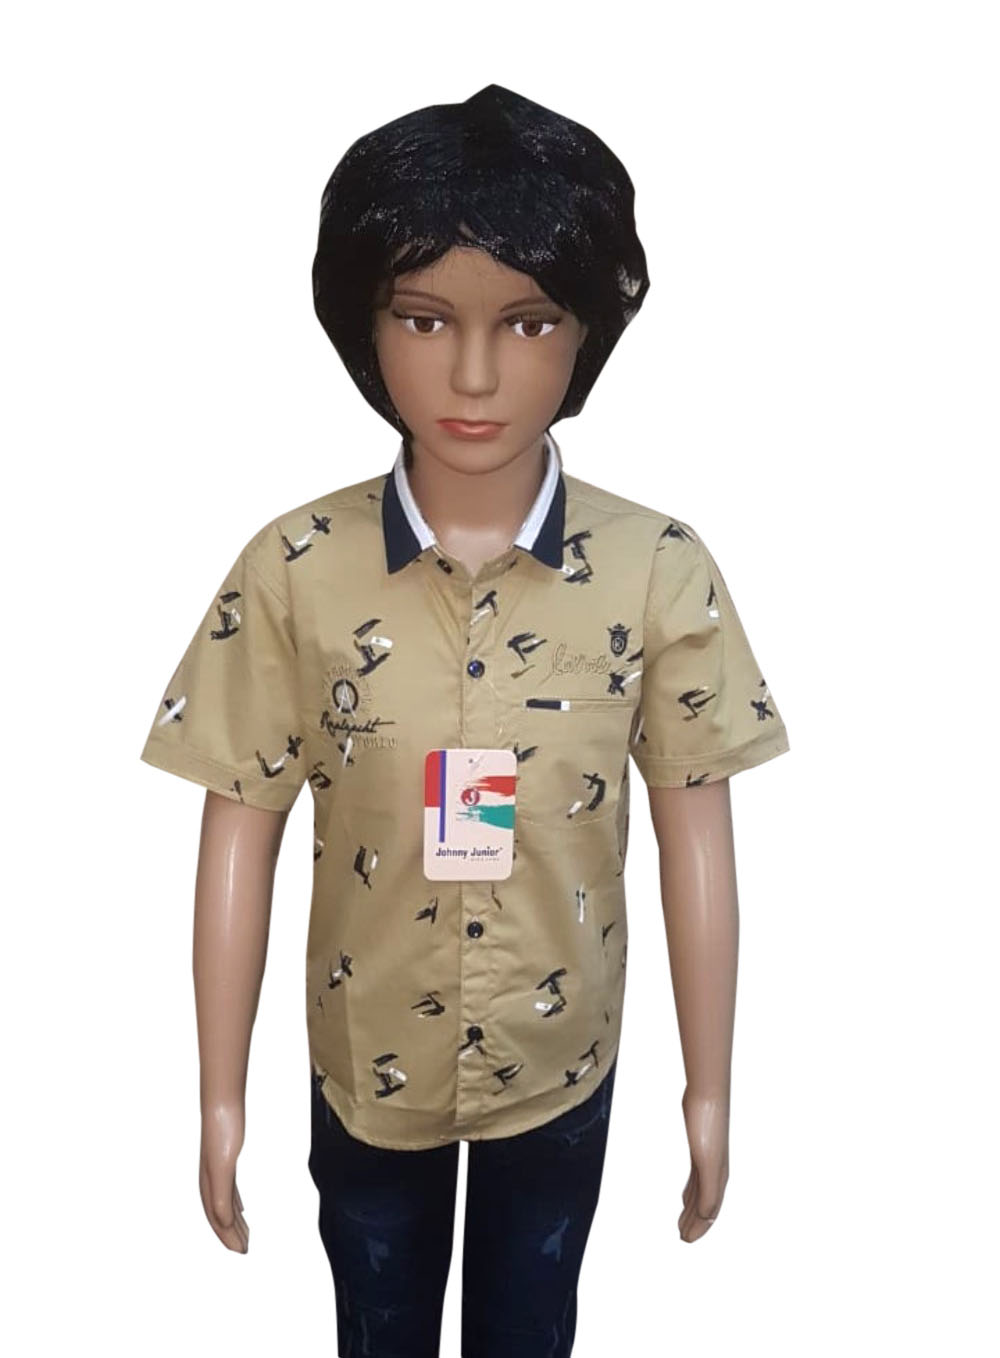 KHS AUG 2019 17-NAVY KHAKHI KIDS HALF SLEEVES SHIRT